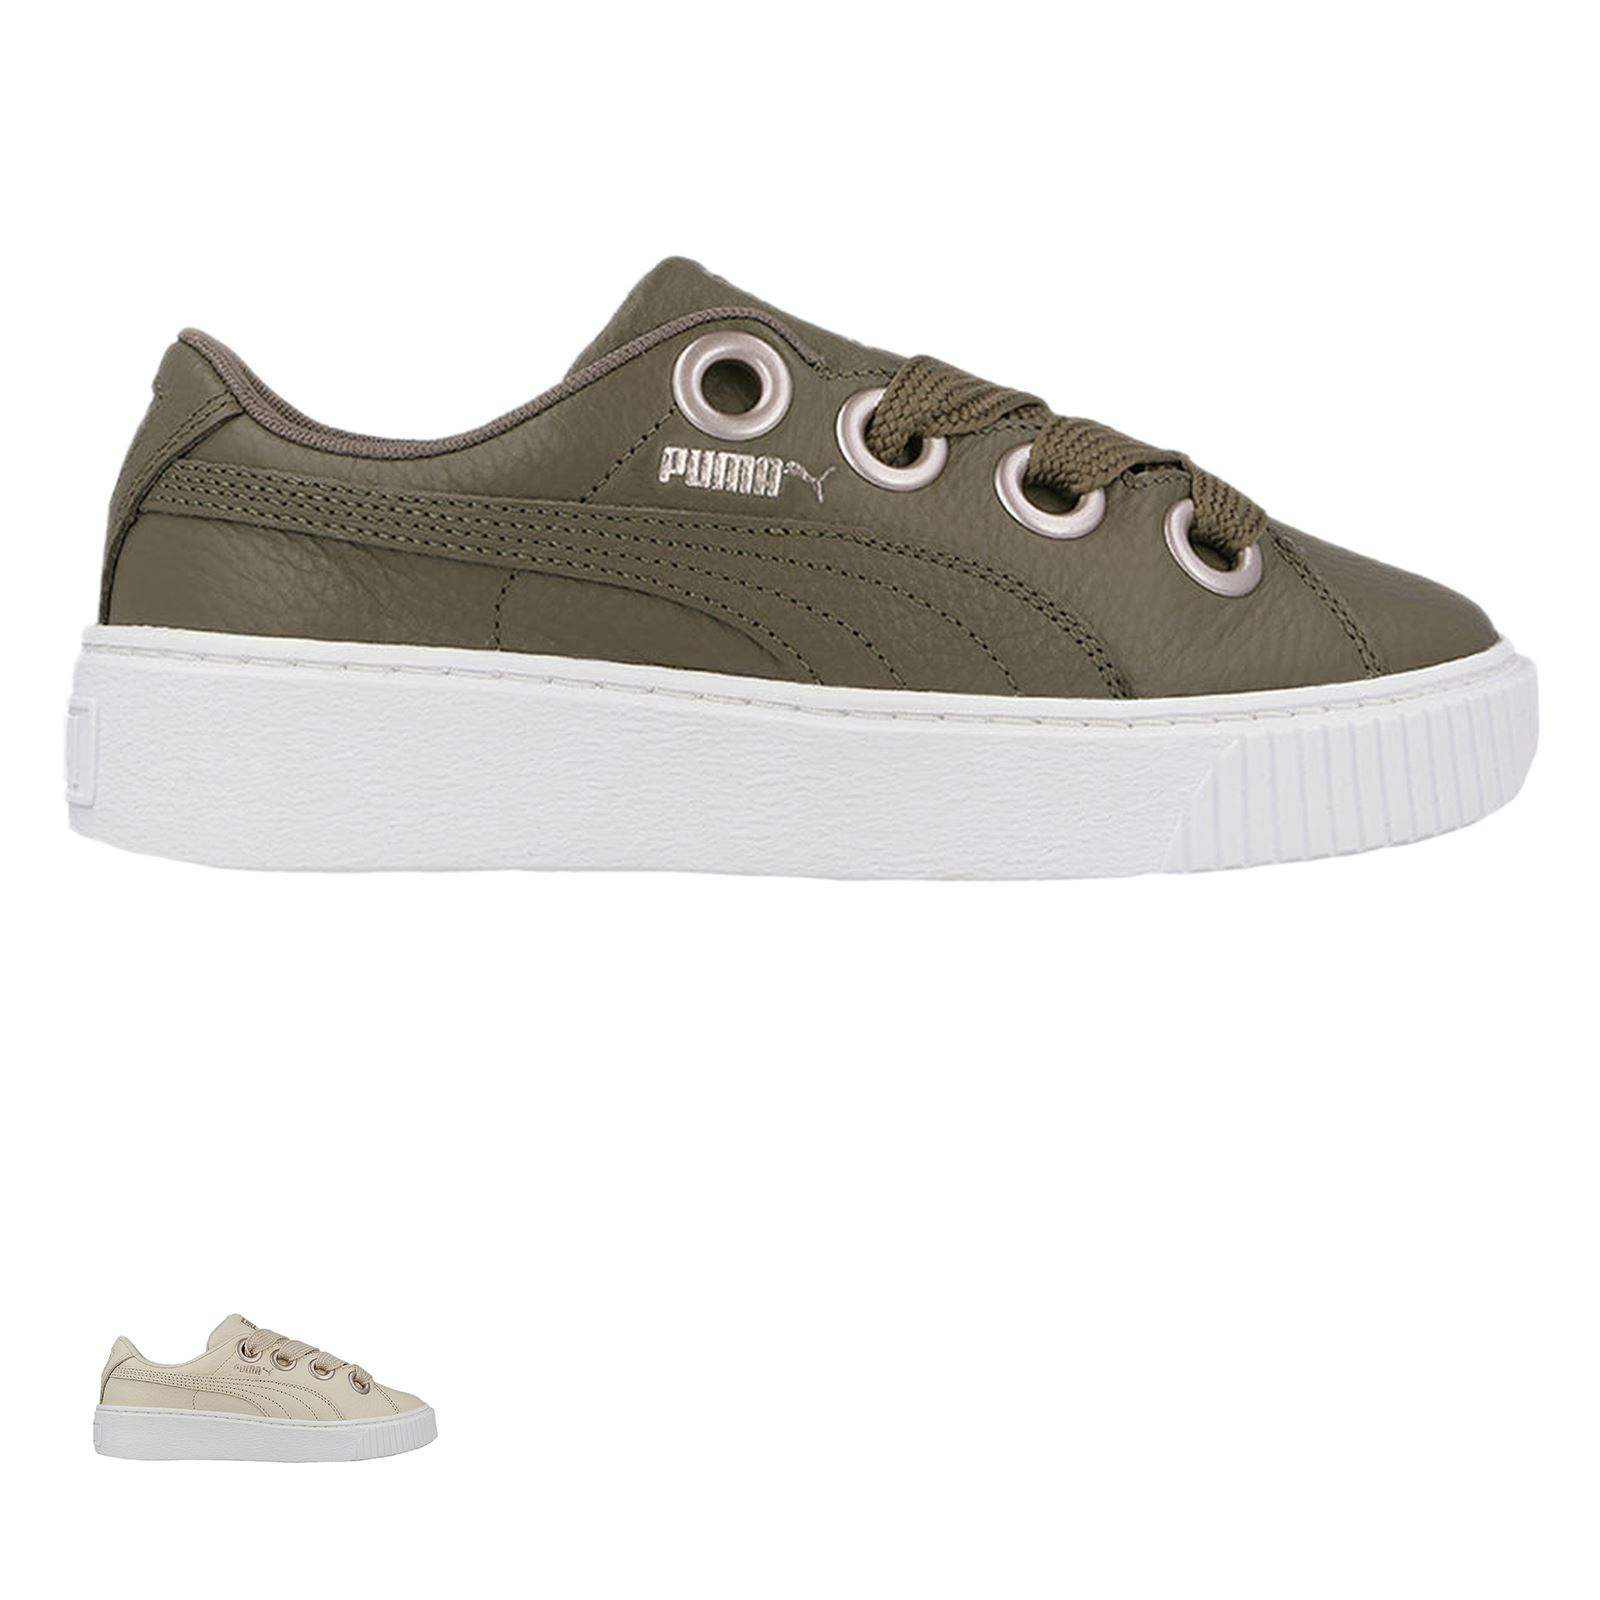 edcd8f75e28f Details about Puma Platform Kiss LEA Wns Leather Low-top Lace-up Sneakers  Womens Trainers